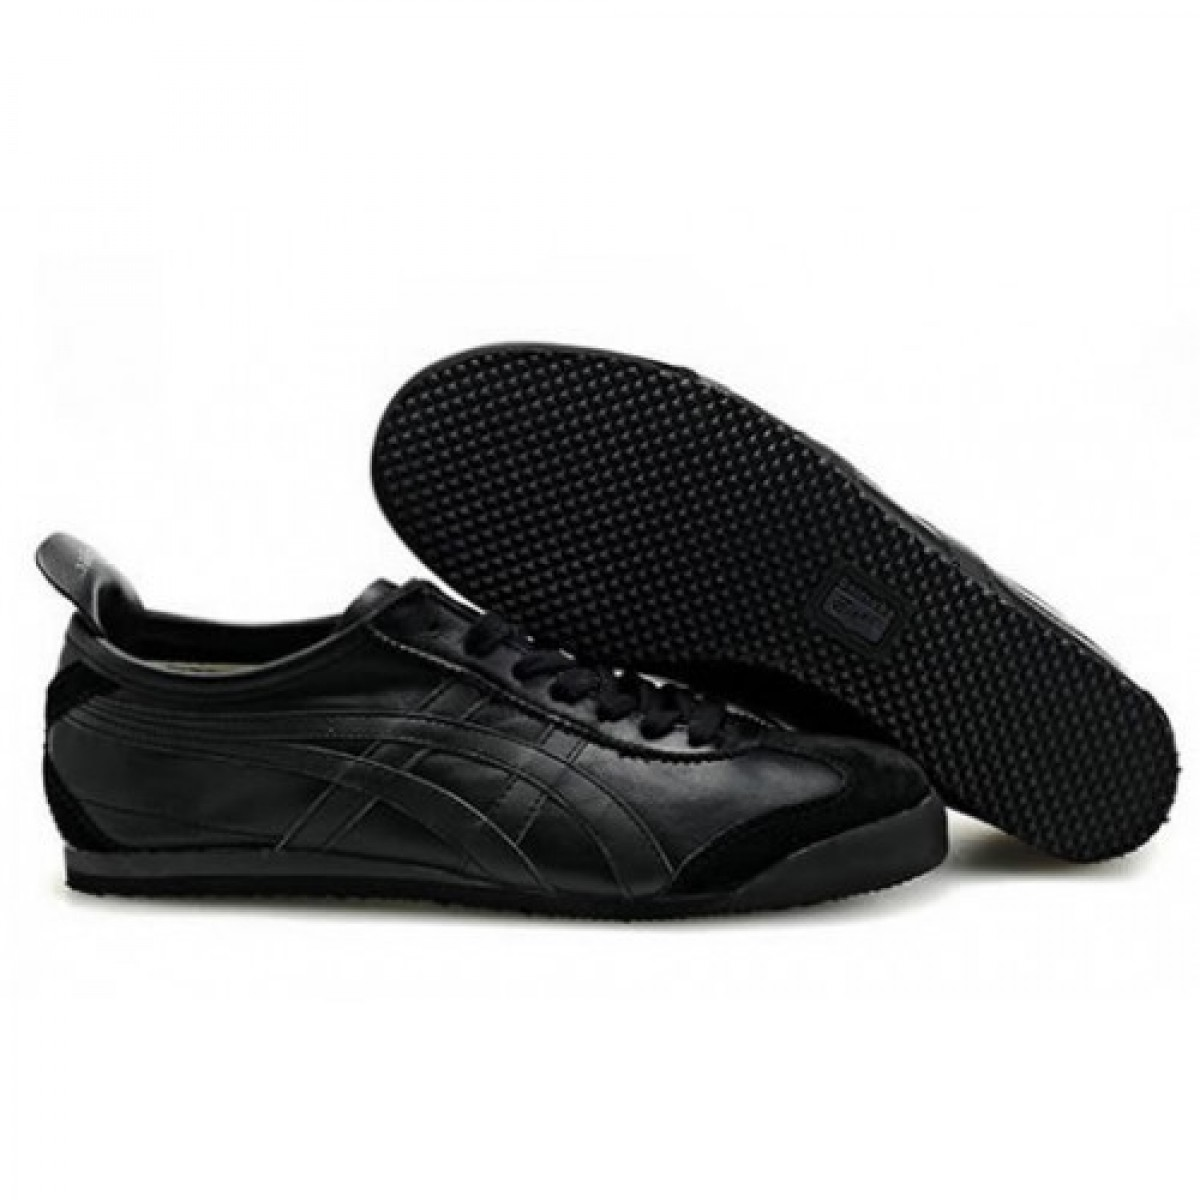 PB7868 Soldes Asics Onitsuka Tiger Mexico Womens 66 All Black 48148536 Pas Cher